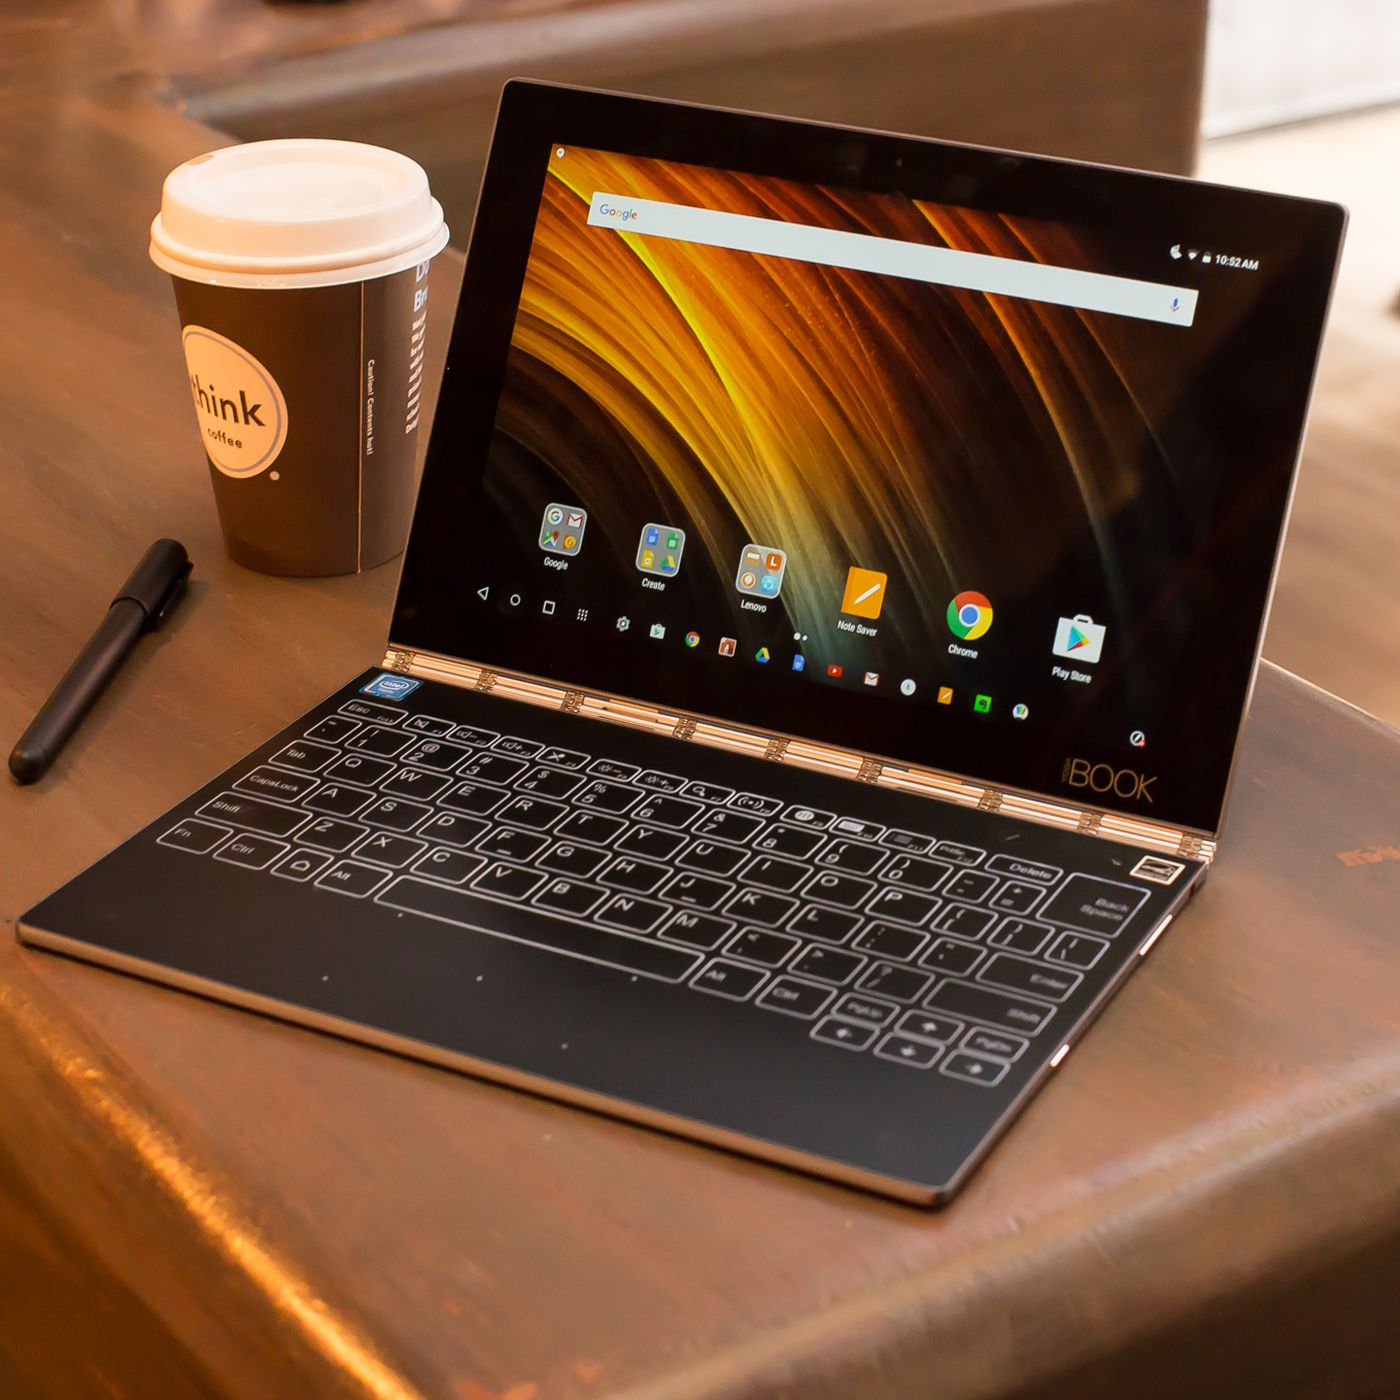 Lenovo Yoga Book review: the unbearable lightness of